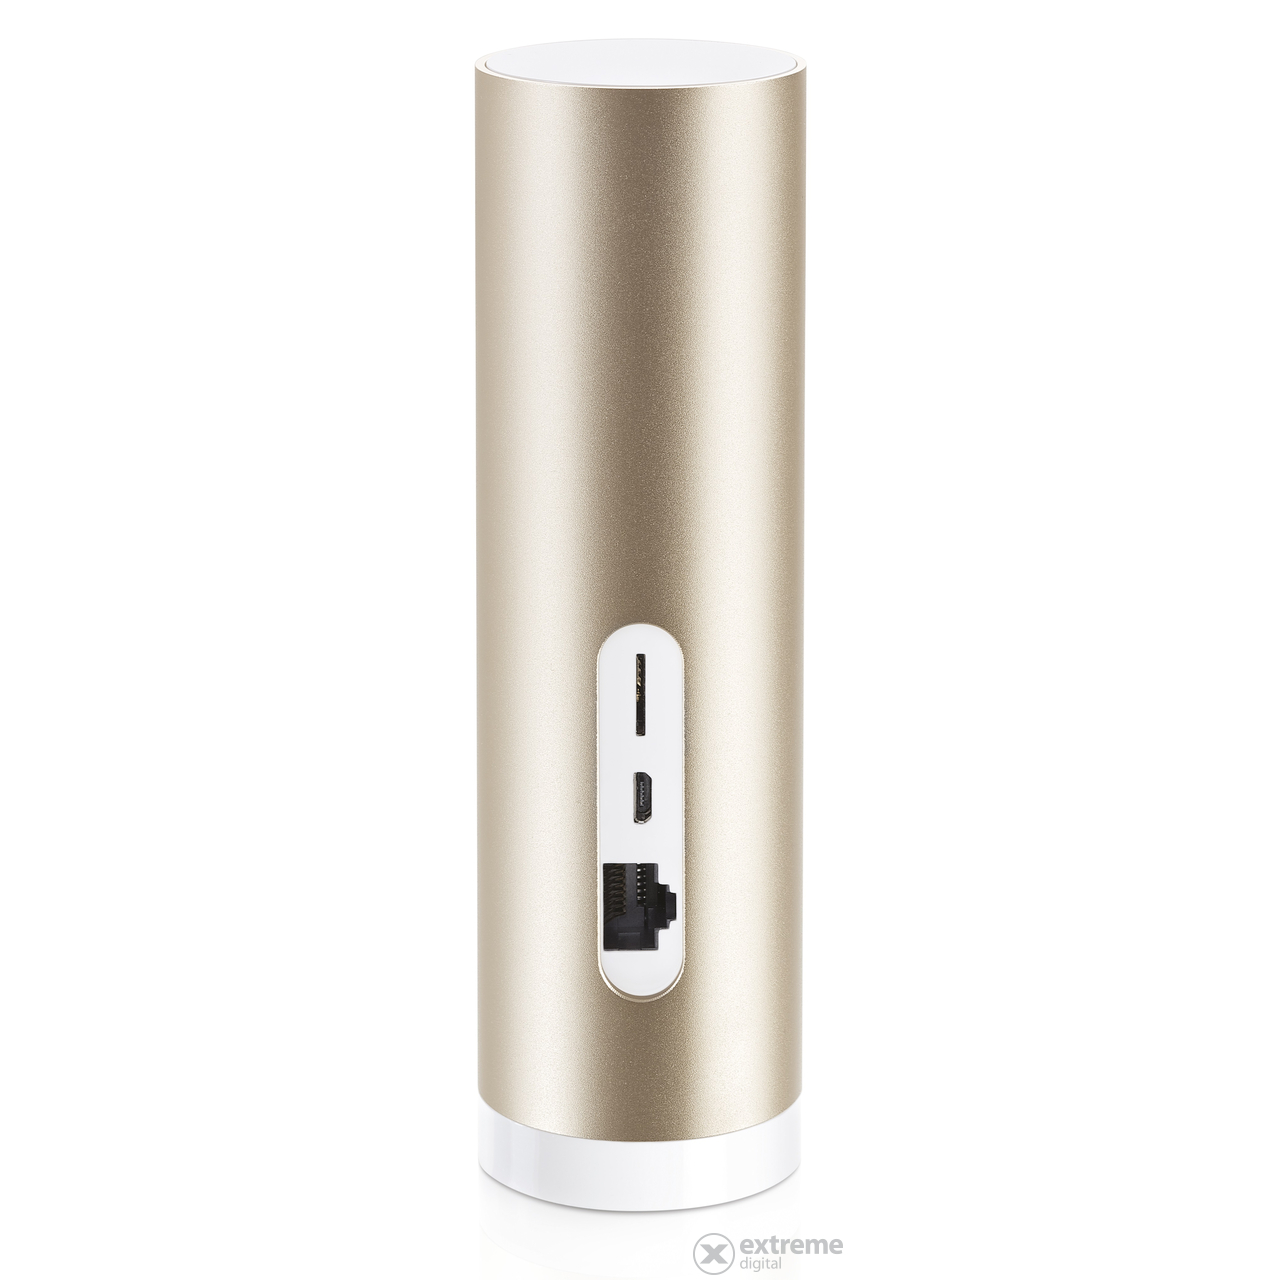 NETATMO WELCOME inteligentna kamera